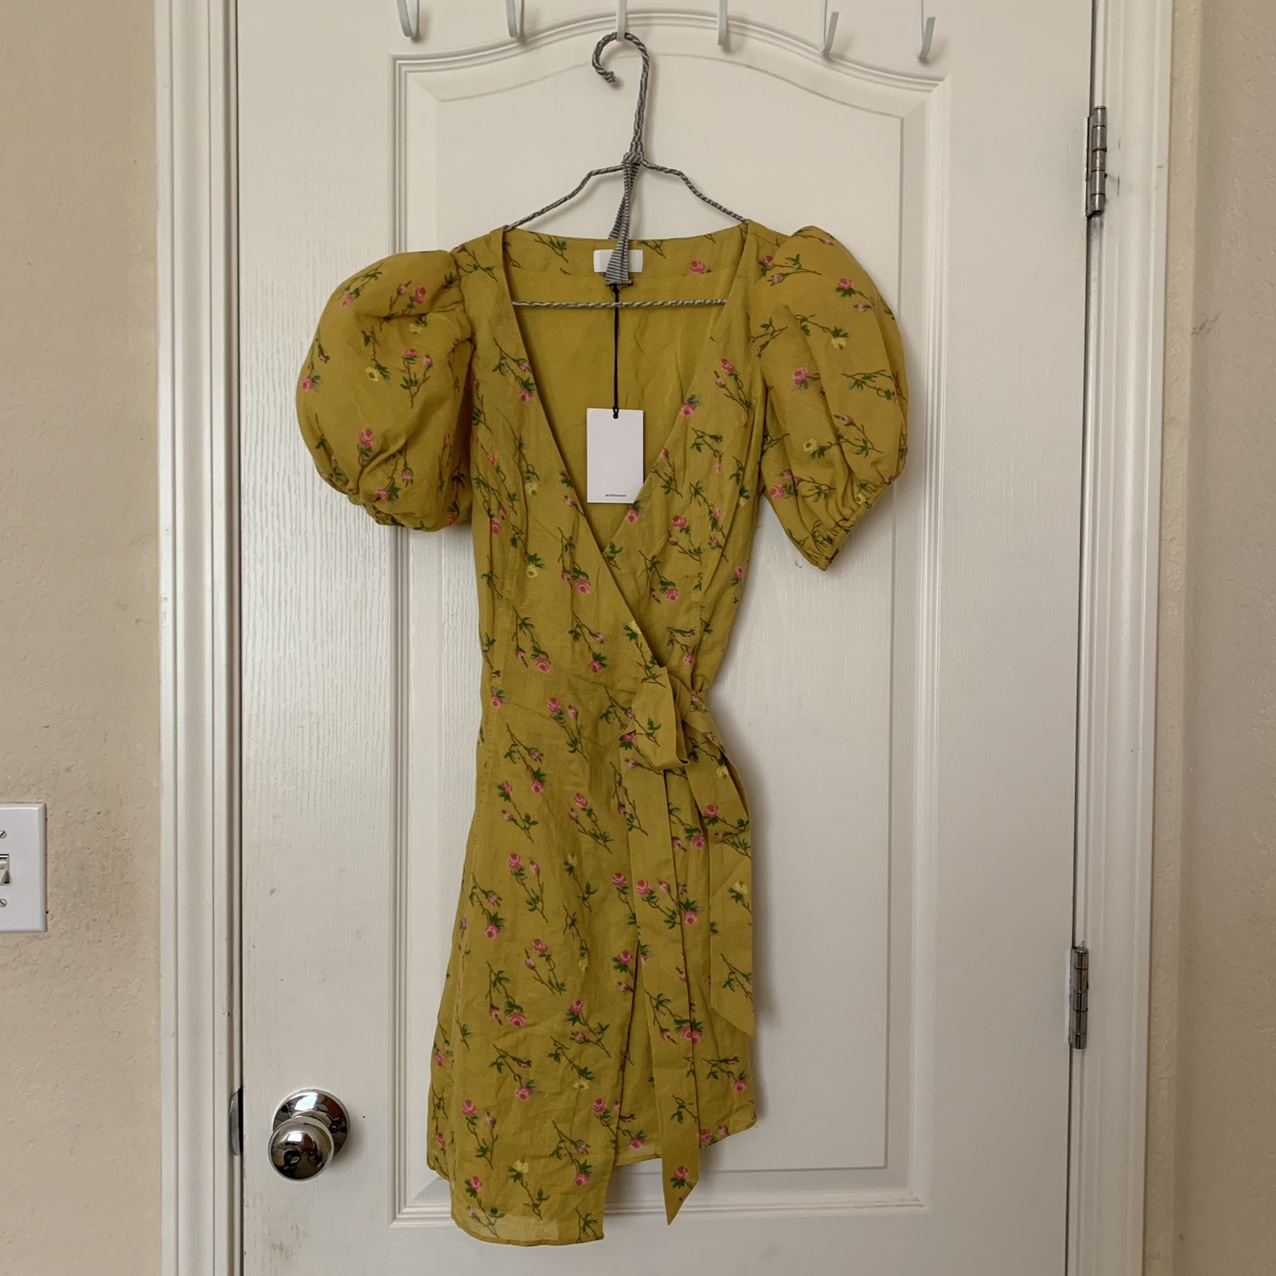 Product Image 1 - Heidi Dress in Little Roses